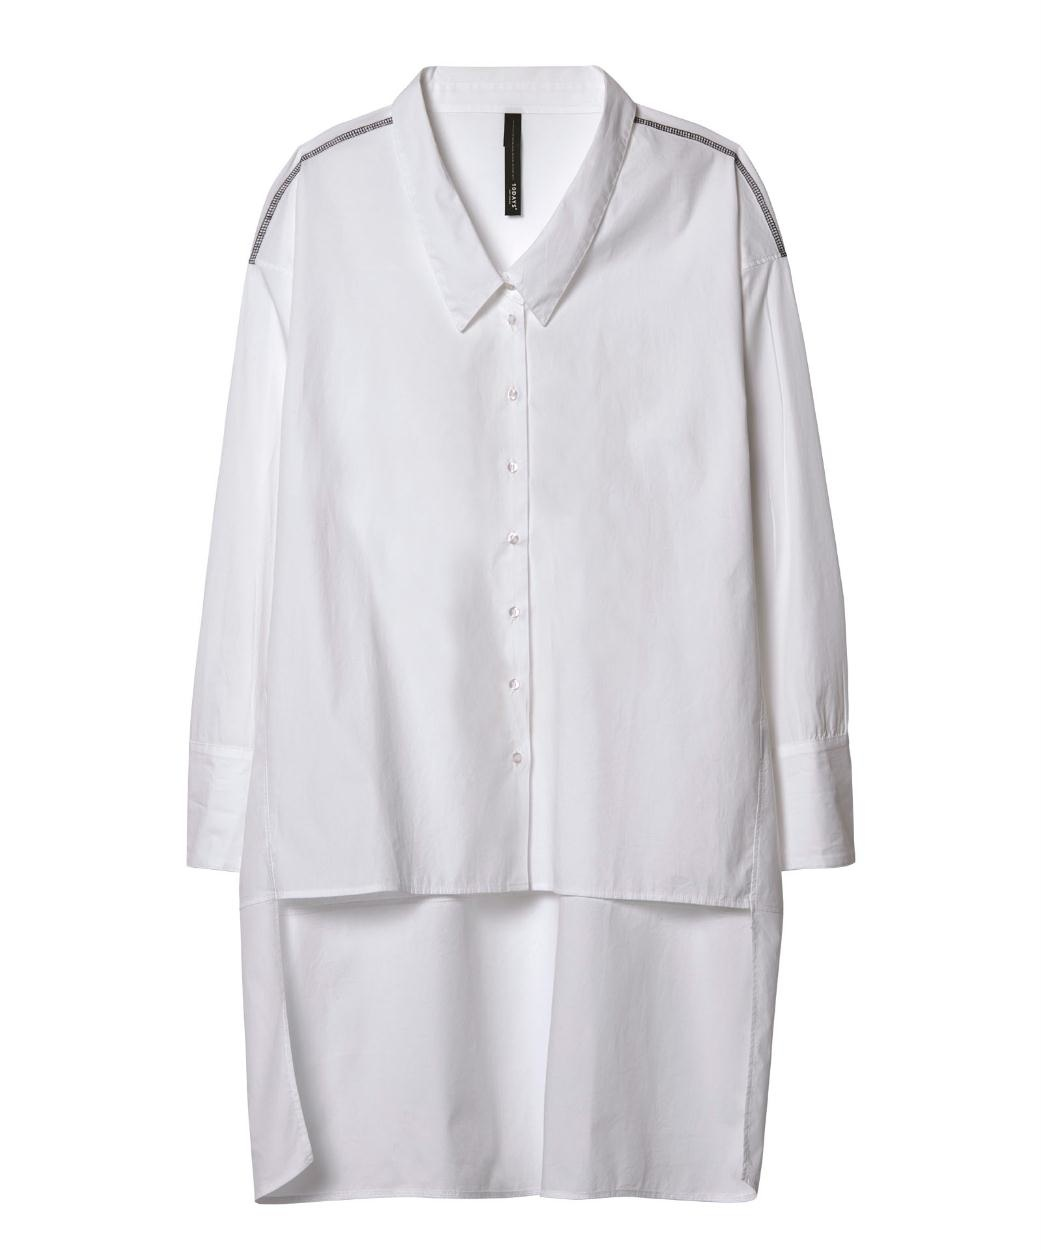 10Days White Shirt Dress 20.401.9103